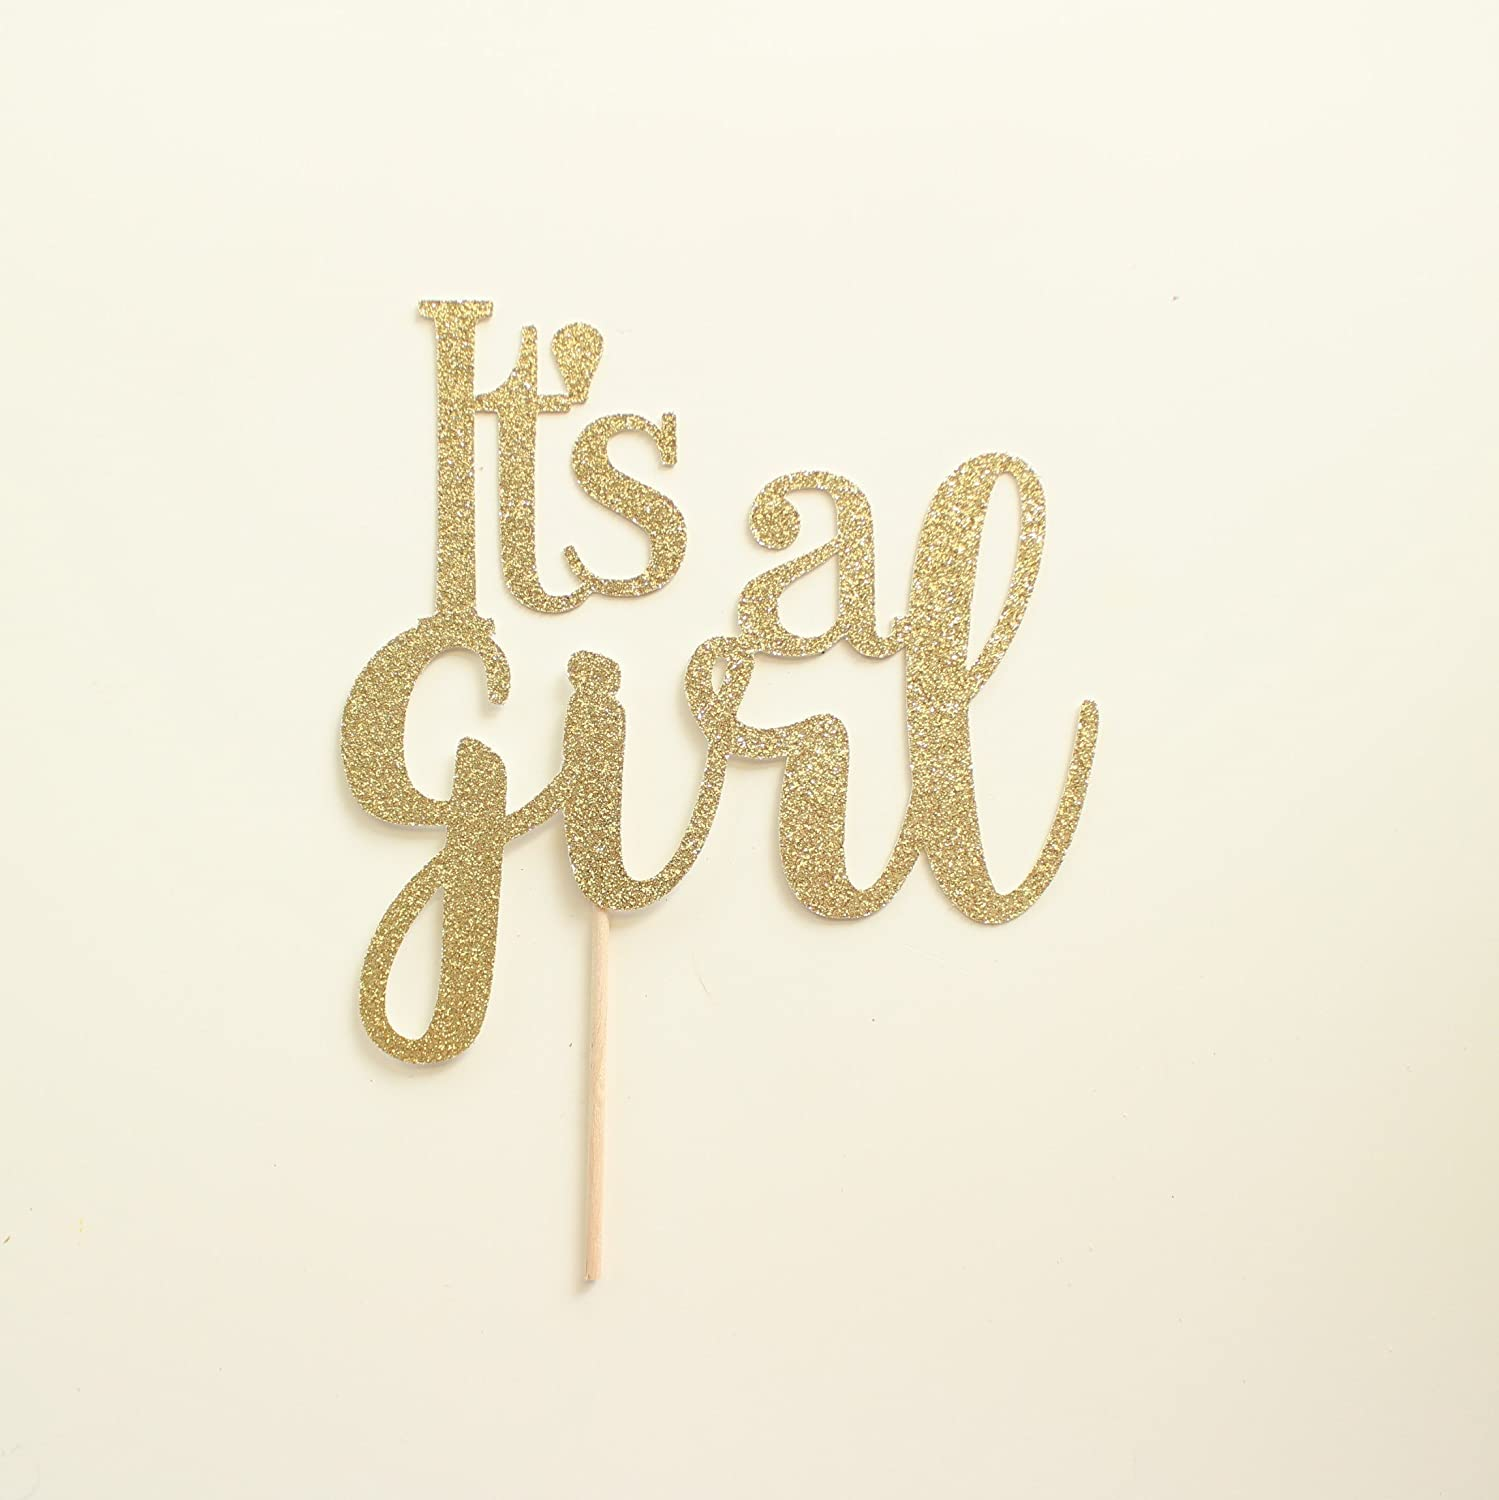 Gold Glitter It's a Girl Cake Topper, Script, Baby Shower, Gender Reveal, Sip and See